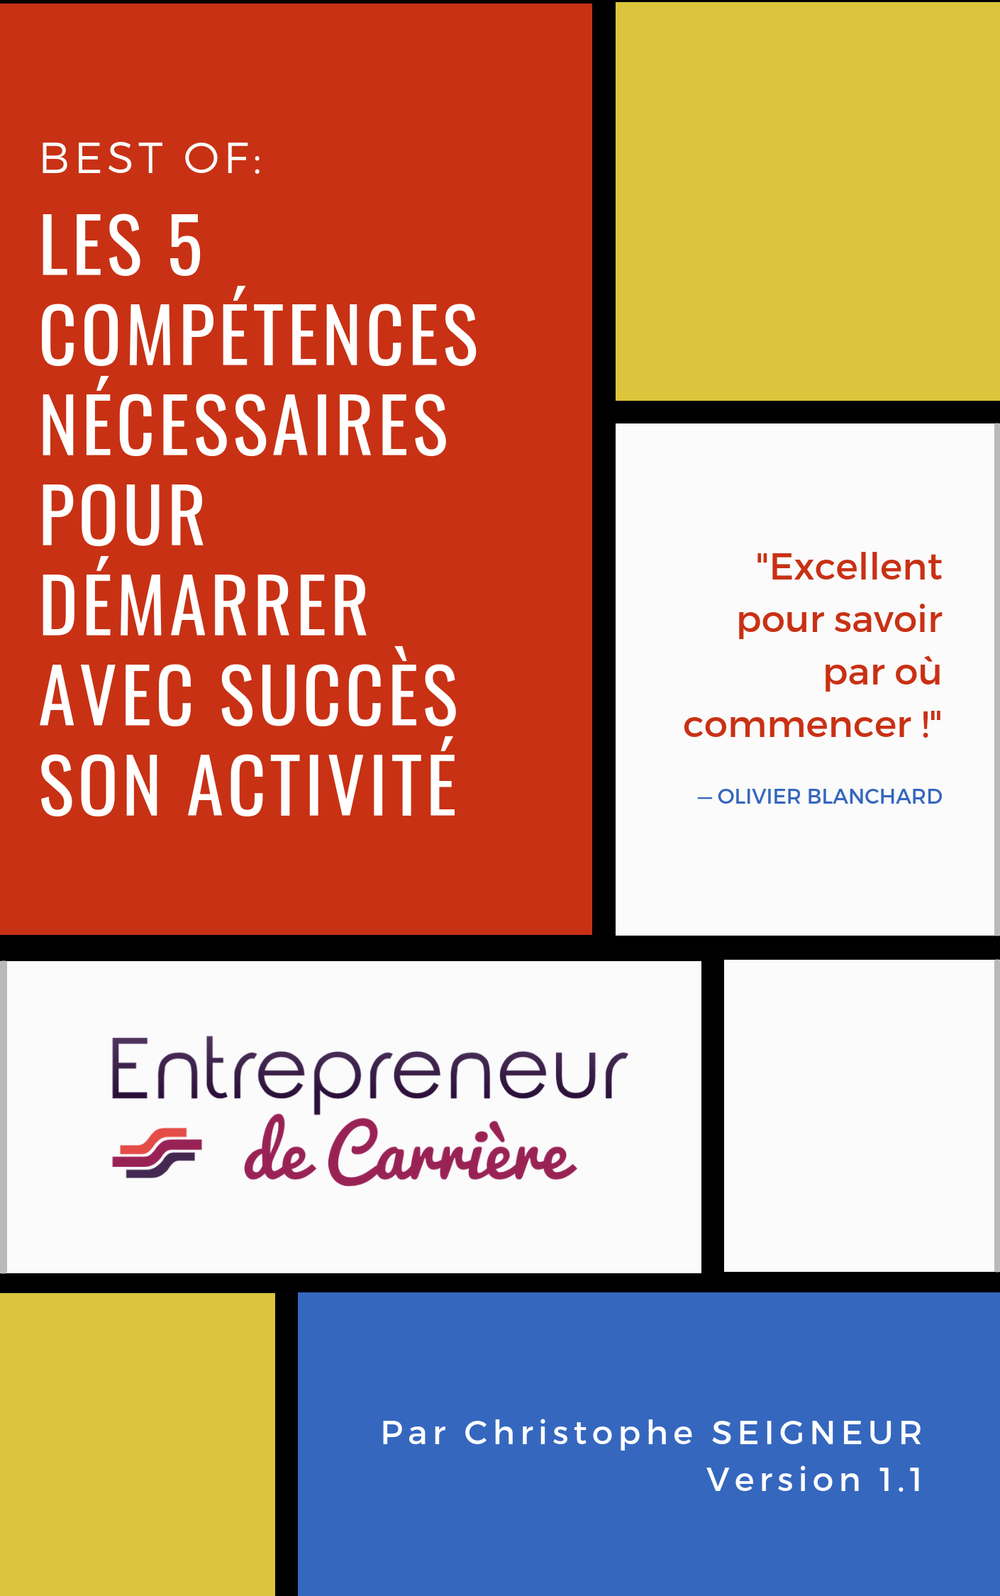 Couverture E-book EDC 4.png